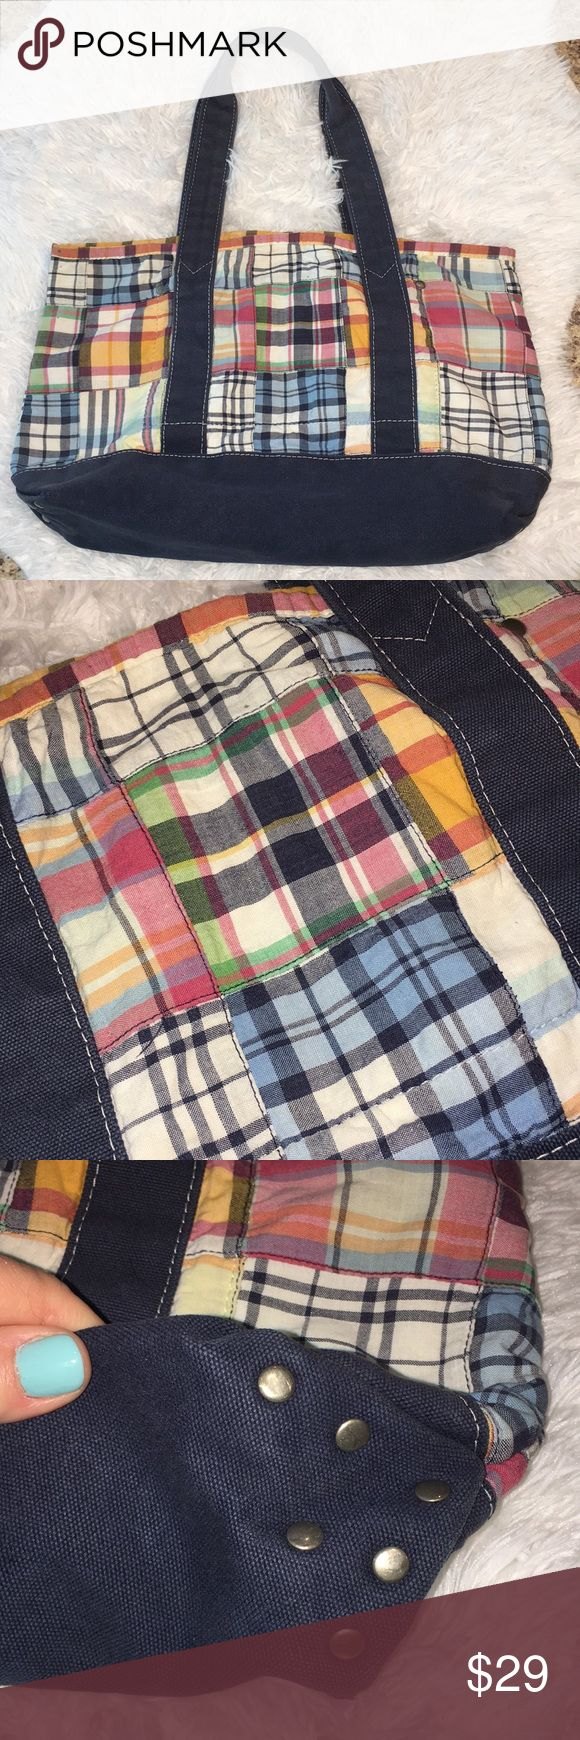 J. CREW Classic Madras Plaid tote Bag Purse This is a J. CREW Classic Madras Plaid tote Bag Purse in used condition! Outside is clean ! Navy trim feels like canvas! Interior is khaki tan color and does have a stain in corner, I added a closeup pic too! I ship fast! Happy poshing friends! J. Crew Bags Totes